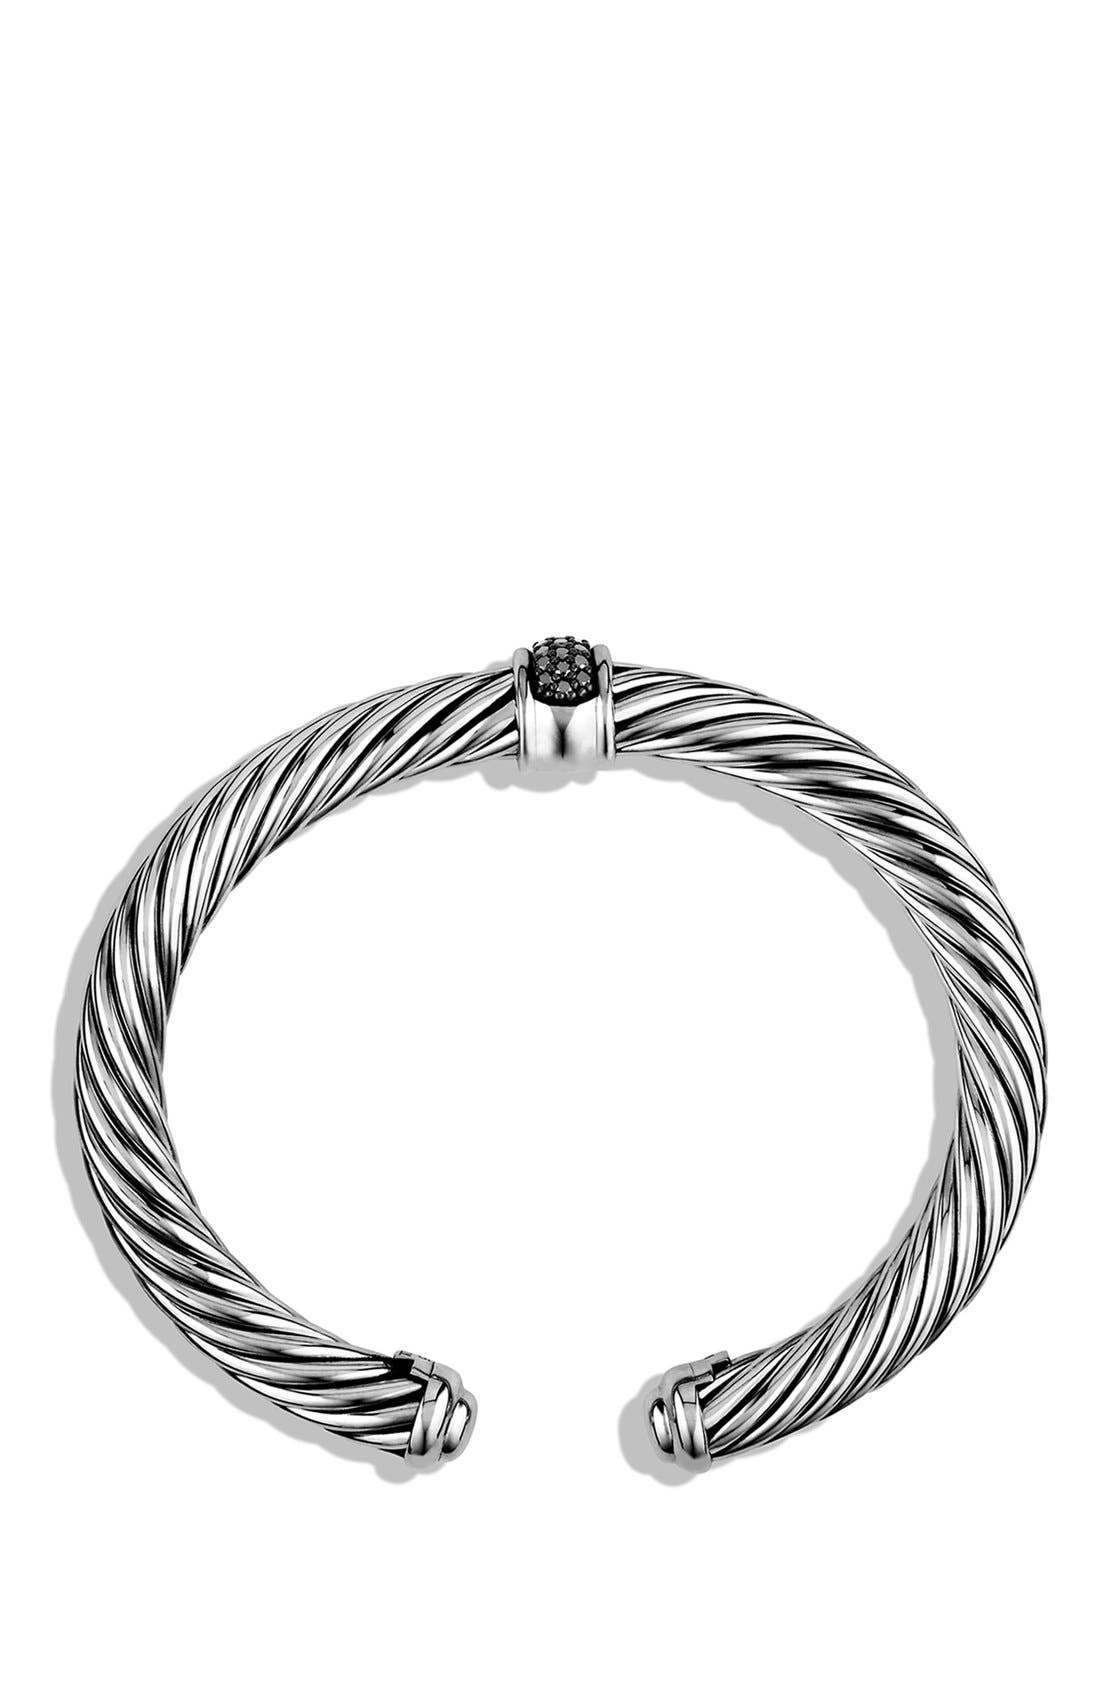 Cable Classics Bracelet with Black Diamonds, 7m,                             Alternate thumbnail 4, color,                             BLACK DIAMOND